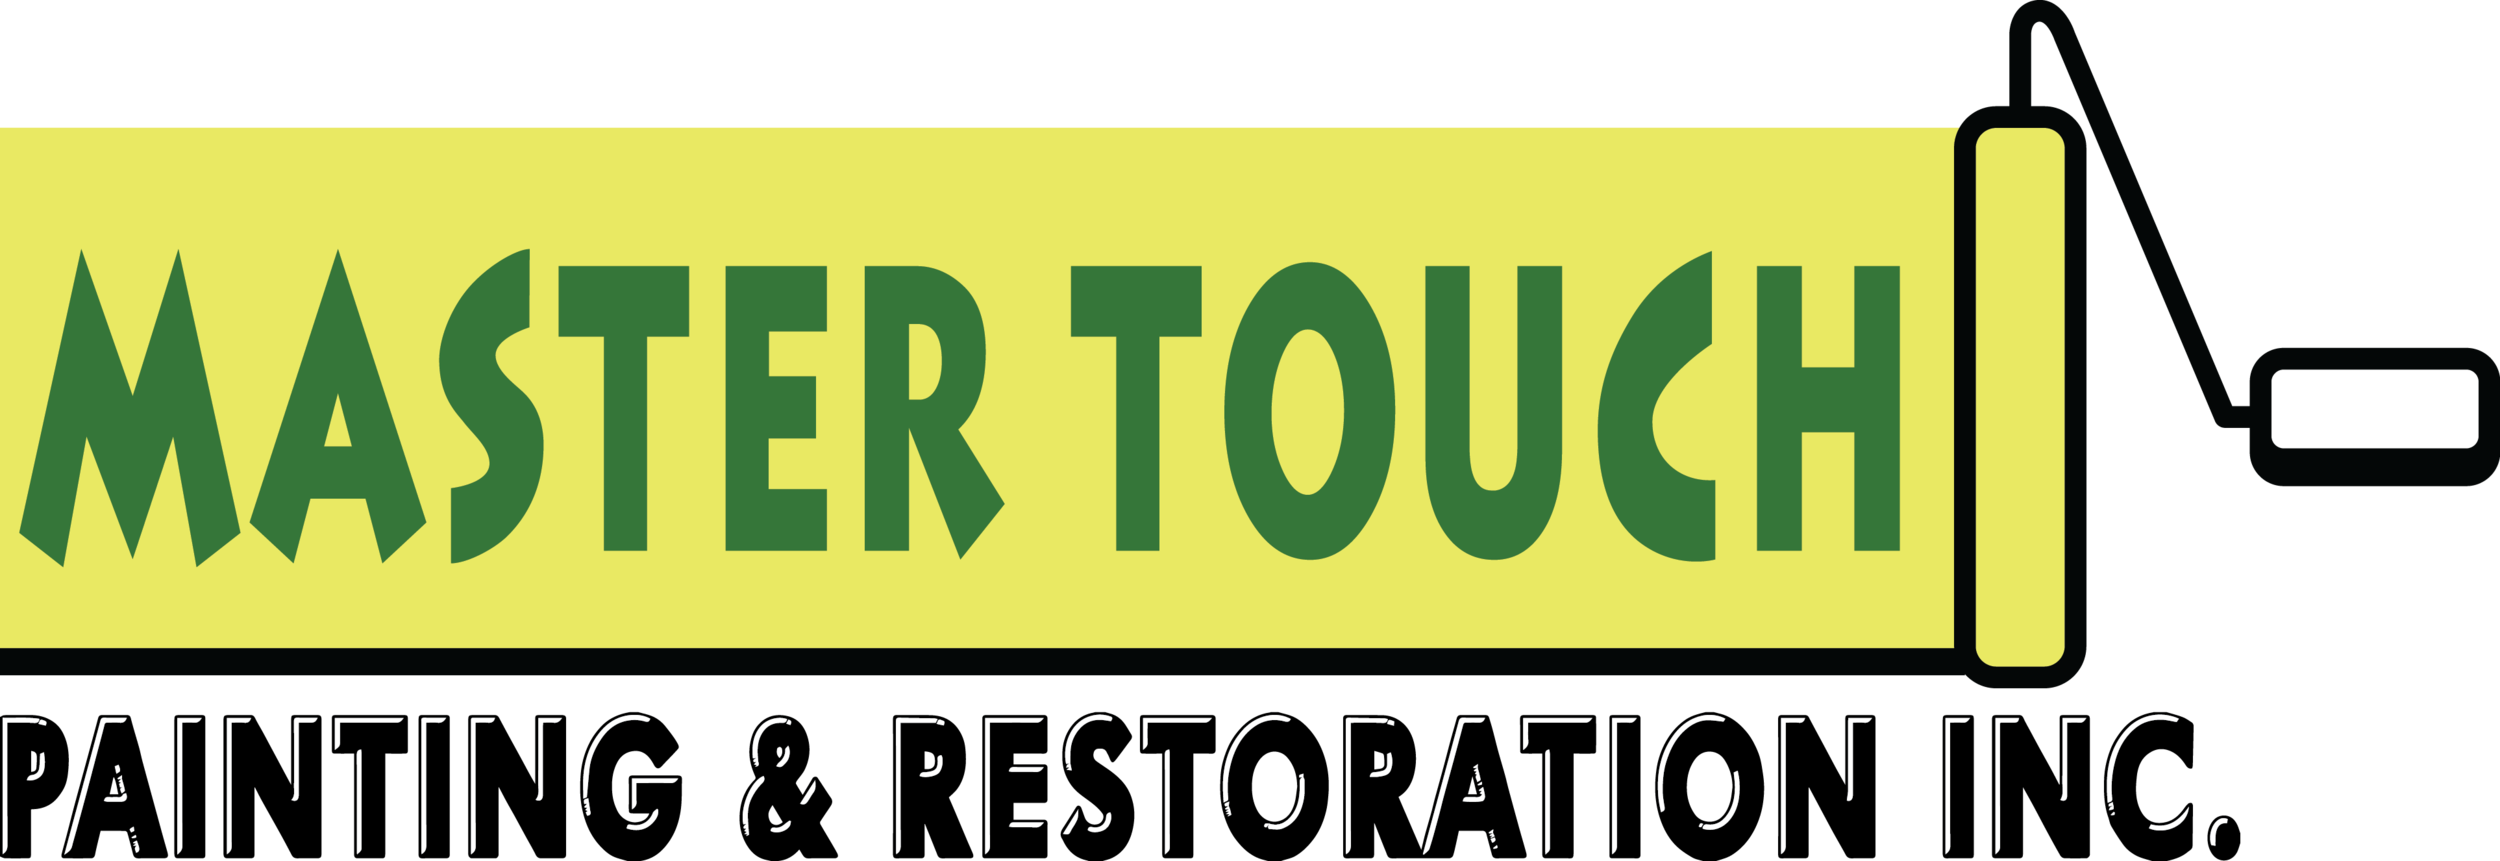 logo_Mastertouch_2.png